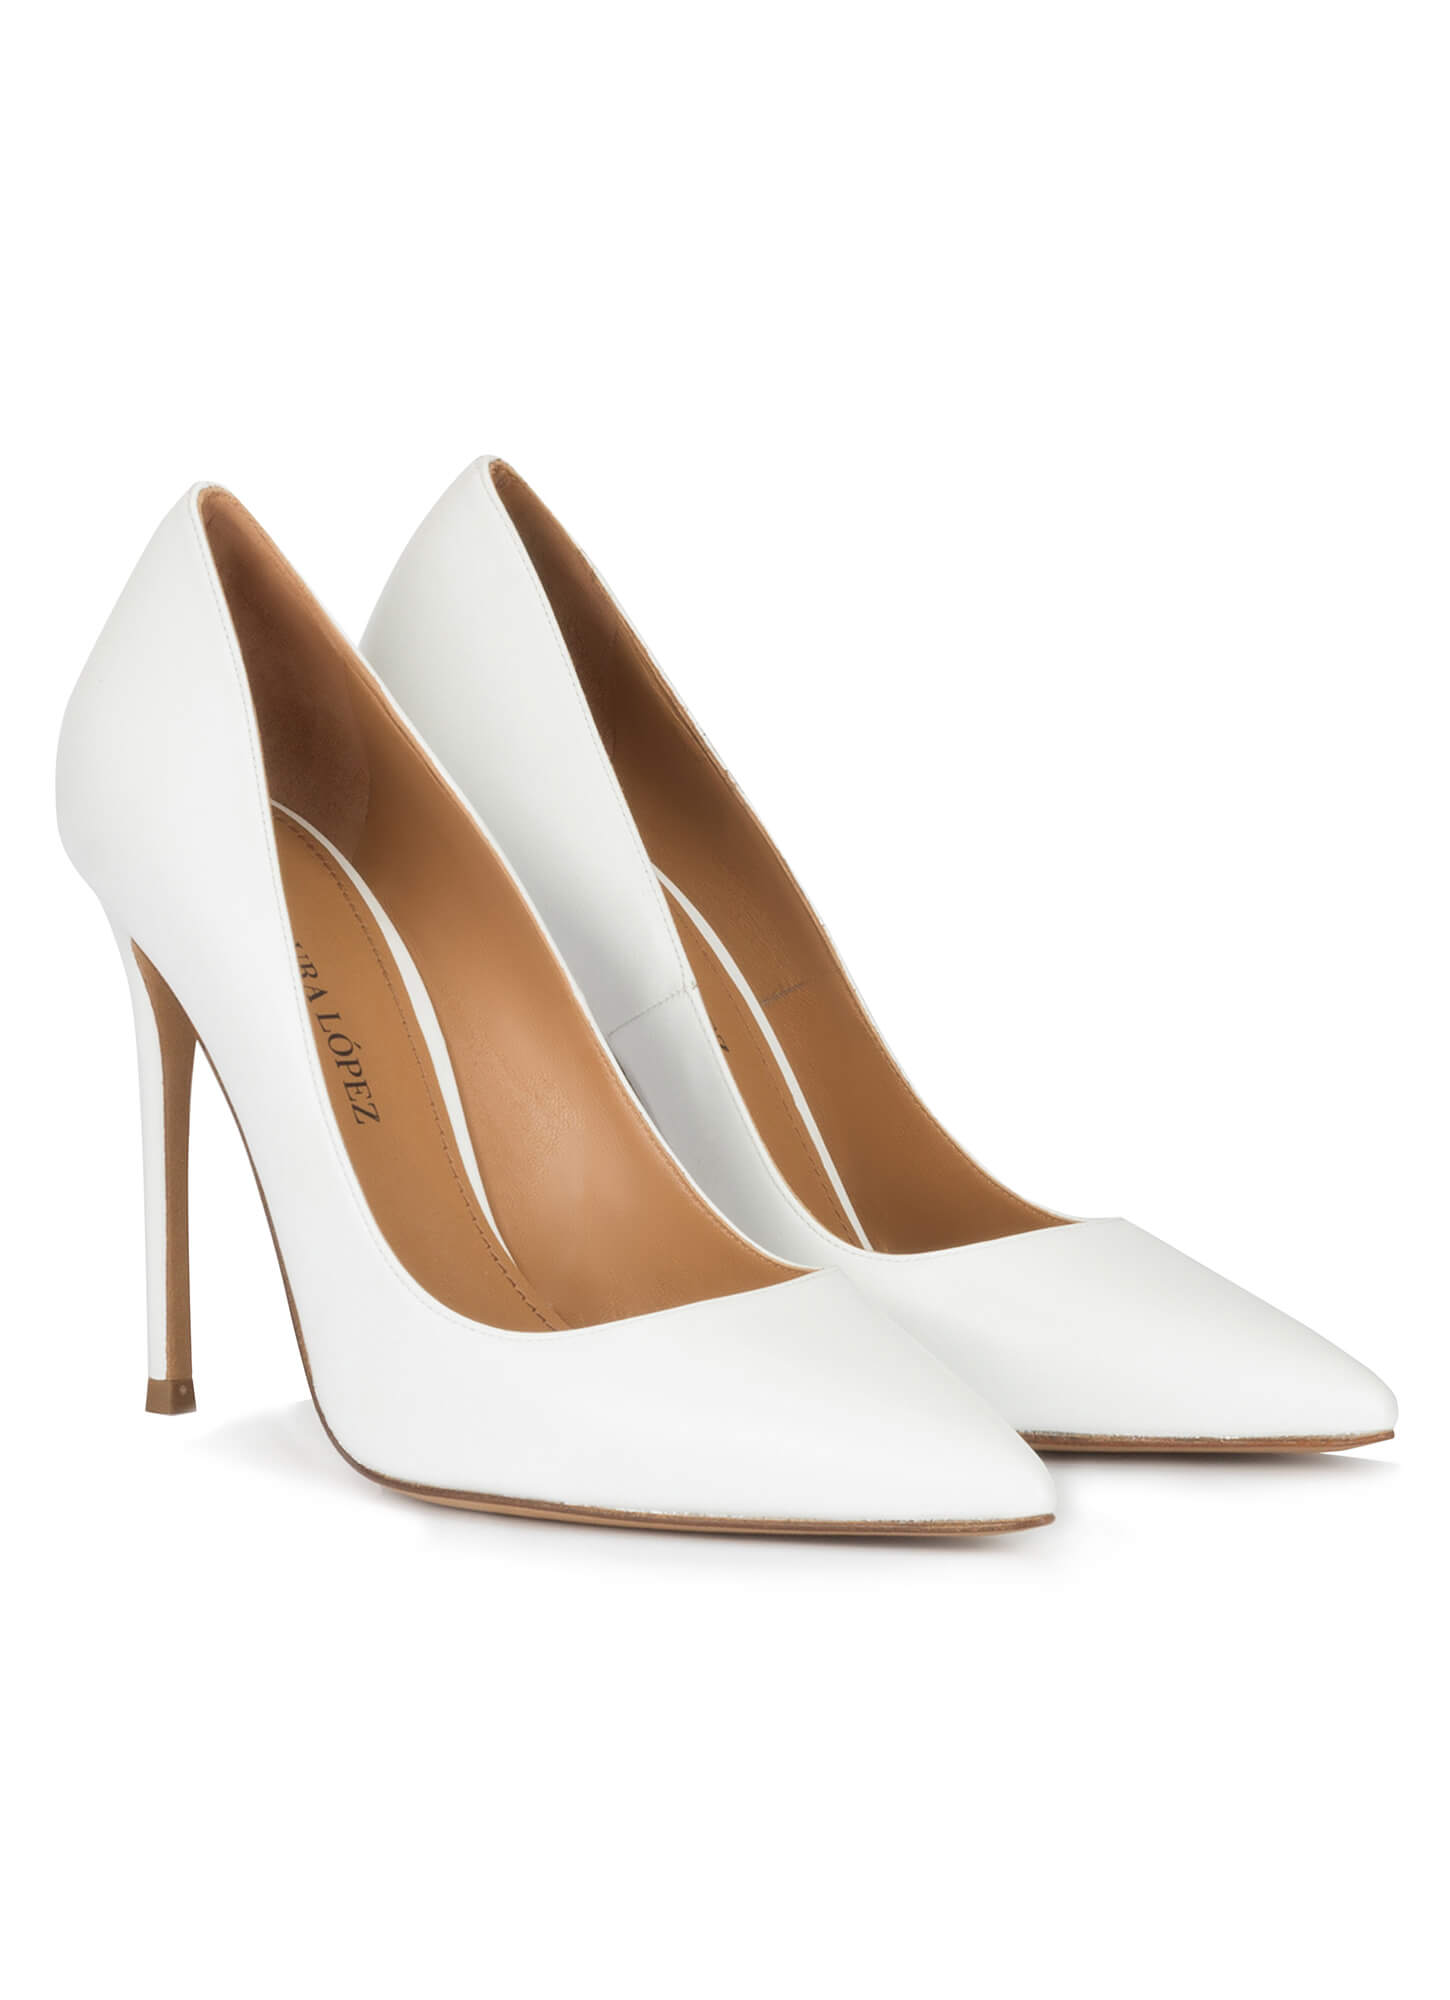 White High Heel Pumps White Leather Leather mNwvOPy8n0